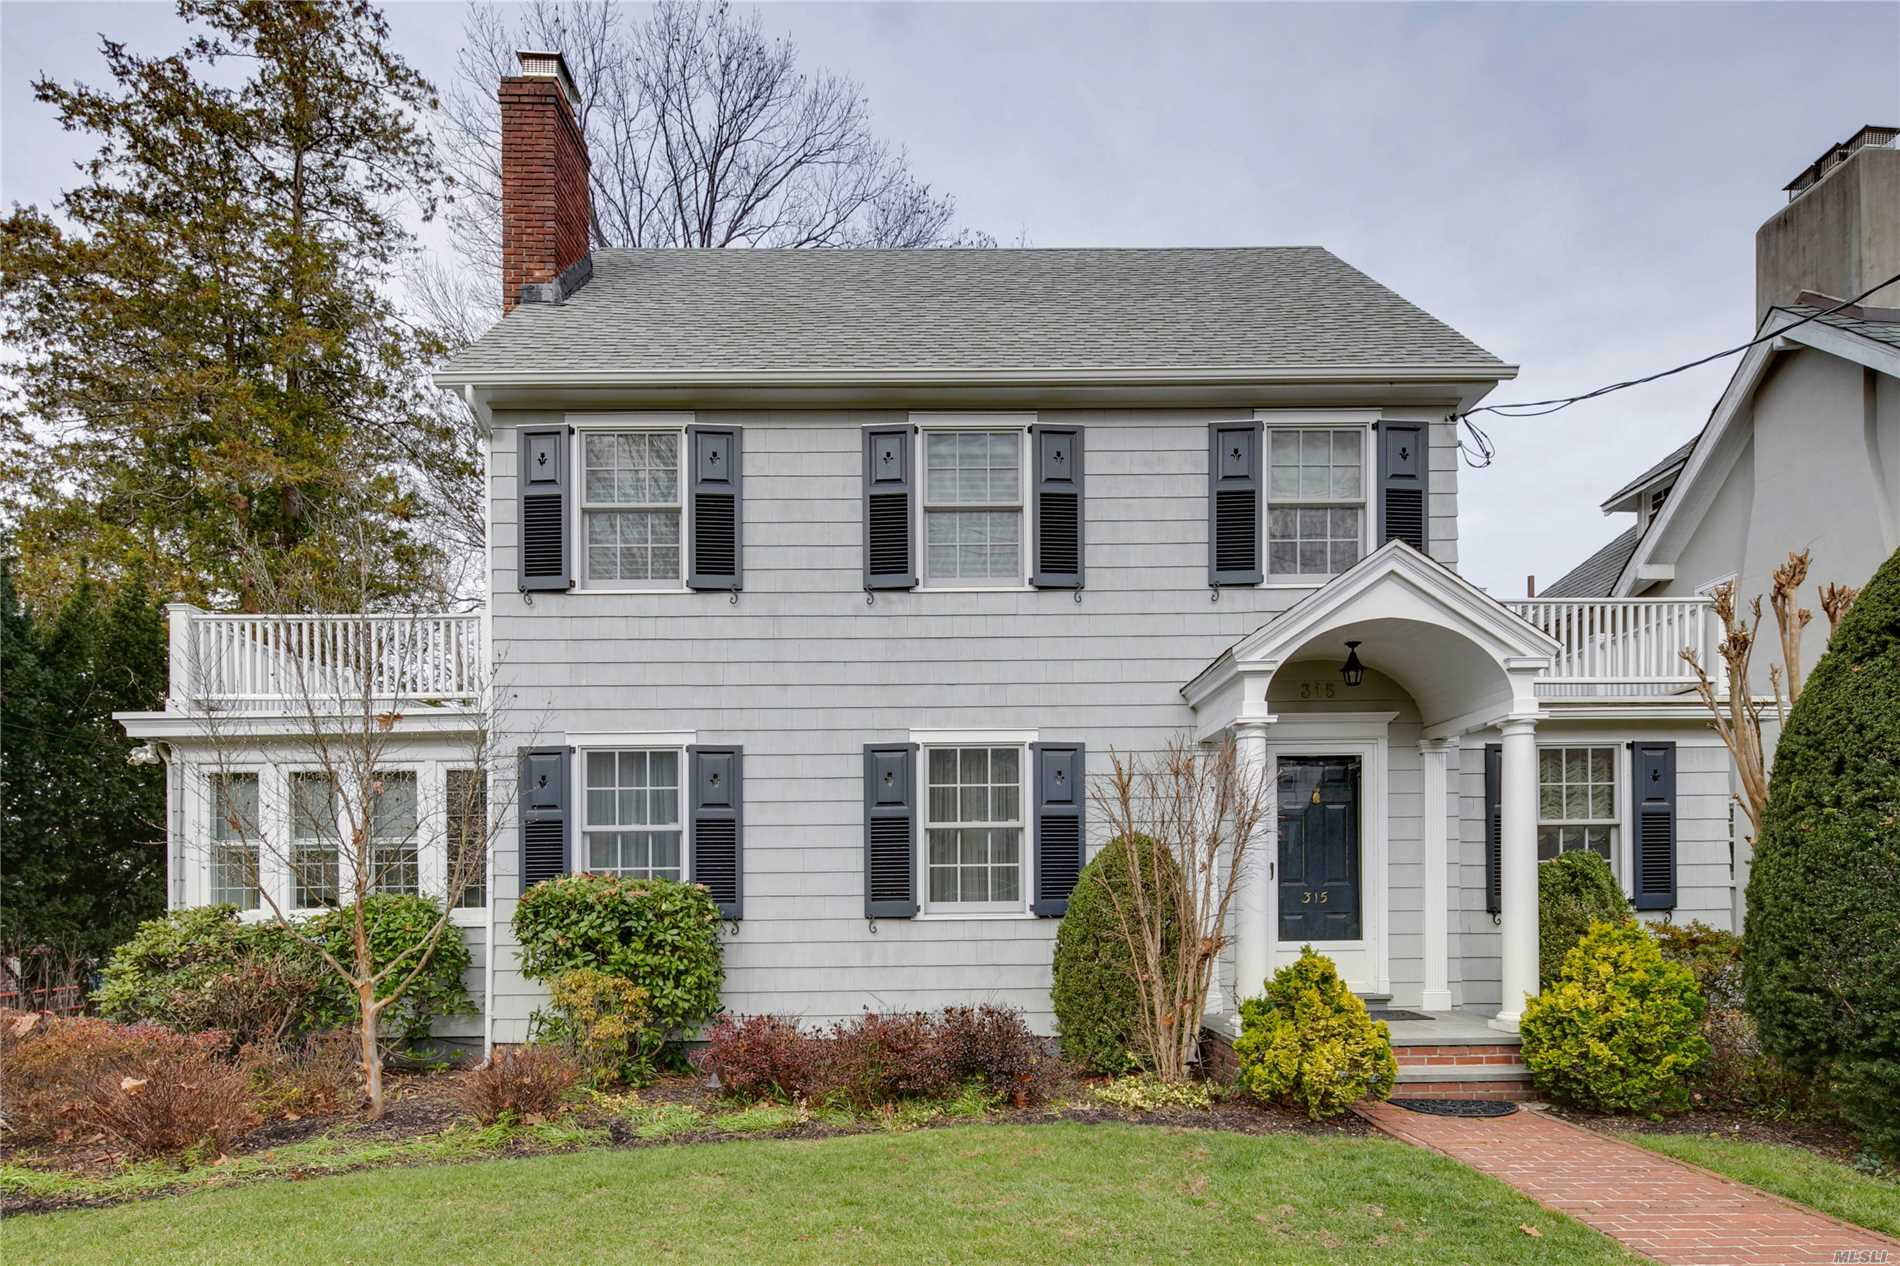 Beautifully Renovated Colonial In The Heart Of Douglas Manor. Lr W/Fpl, Fdr, Custom Eat-In-Kitchen With Granite Counter Tops & Stainless Steel Appliances. Move In Condition, California Closets, Insulated Attic With Skylight, New Patio, Windows & Wood Shutters. Only A Few Blocks To Little Neck Bay & Gorgeous Sunsets. Just 28 Mins To Nyc By Lirr.